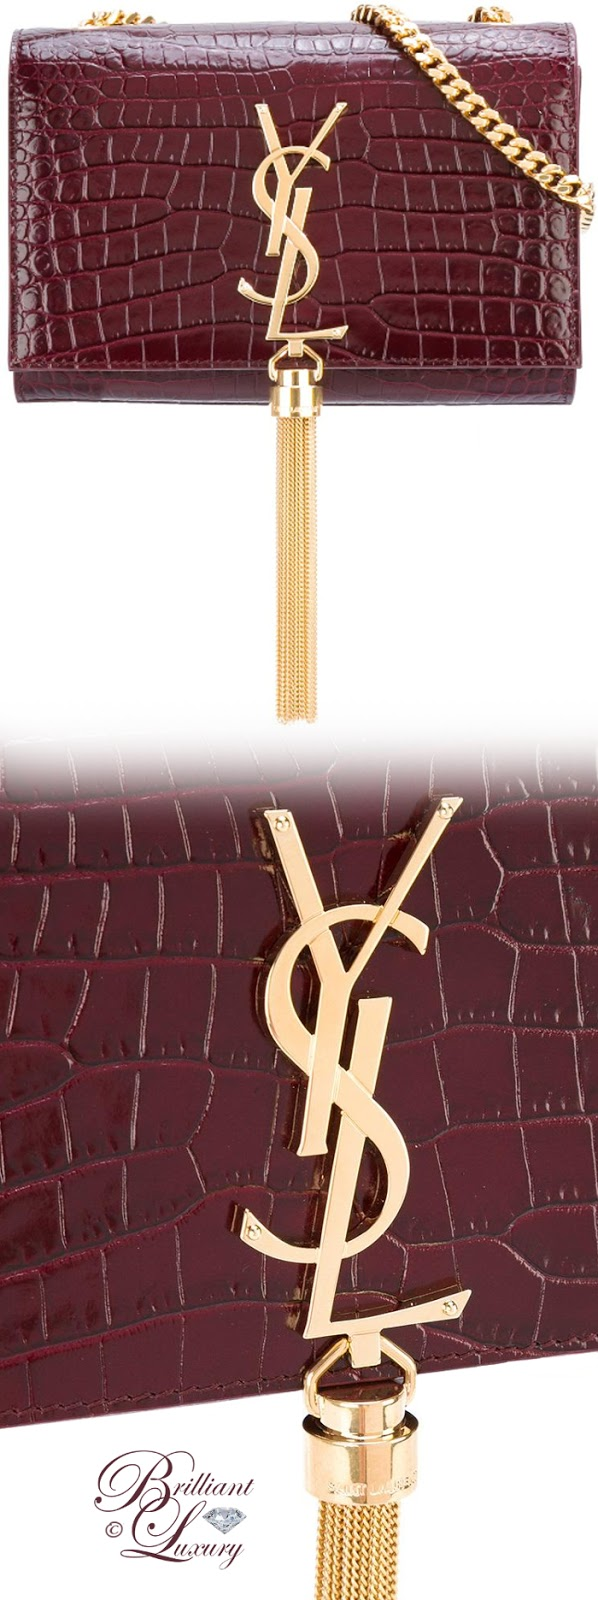 Brilliant Luxury ♦ Saint Laurent Small Monogram Kate Shoulder Bag